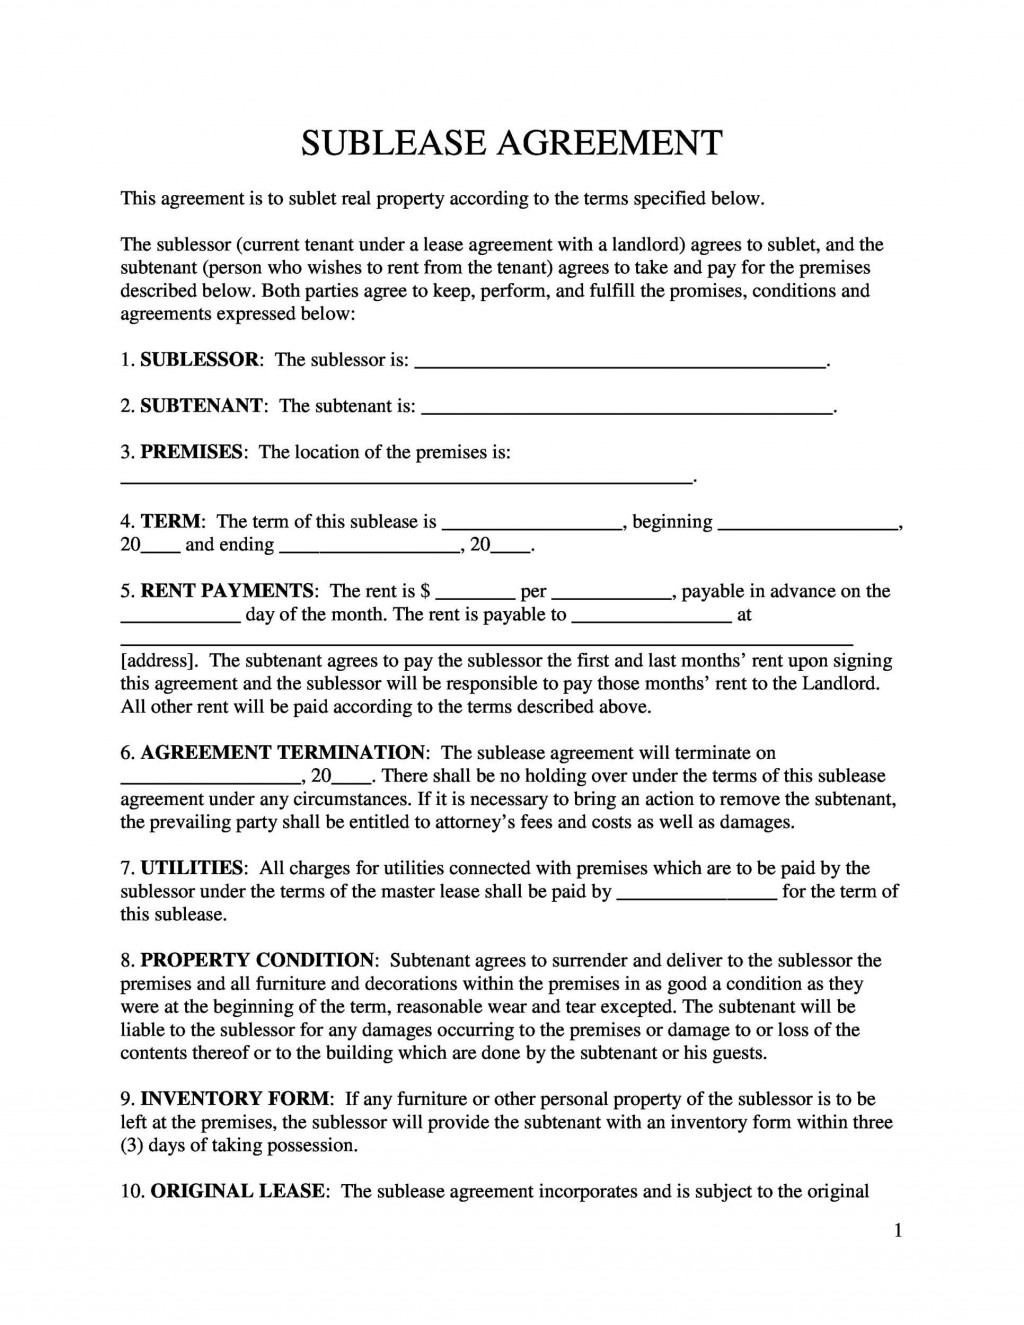 009 Fascinating Free Sublease Agreement Template South Africa High Resolution  Simple Residential Lease Word DownloadLarge